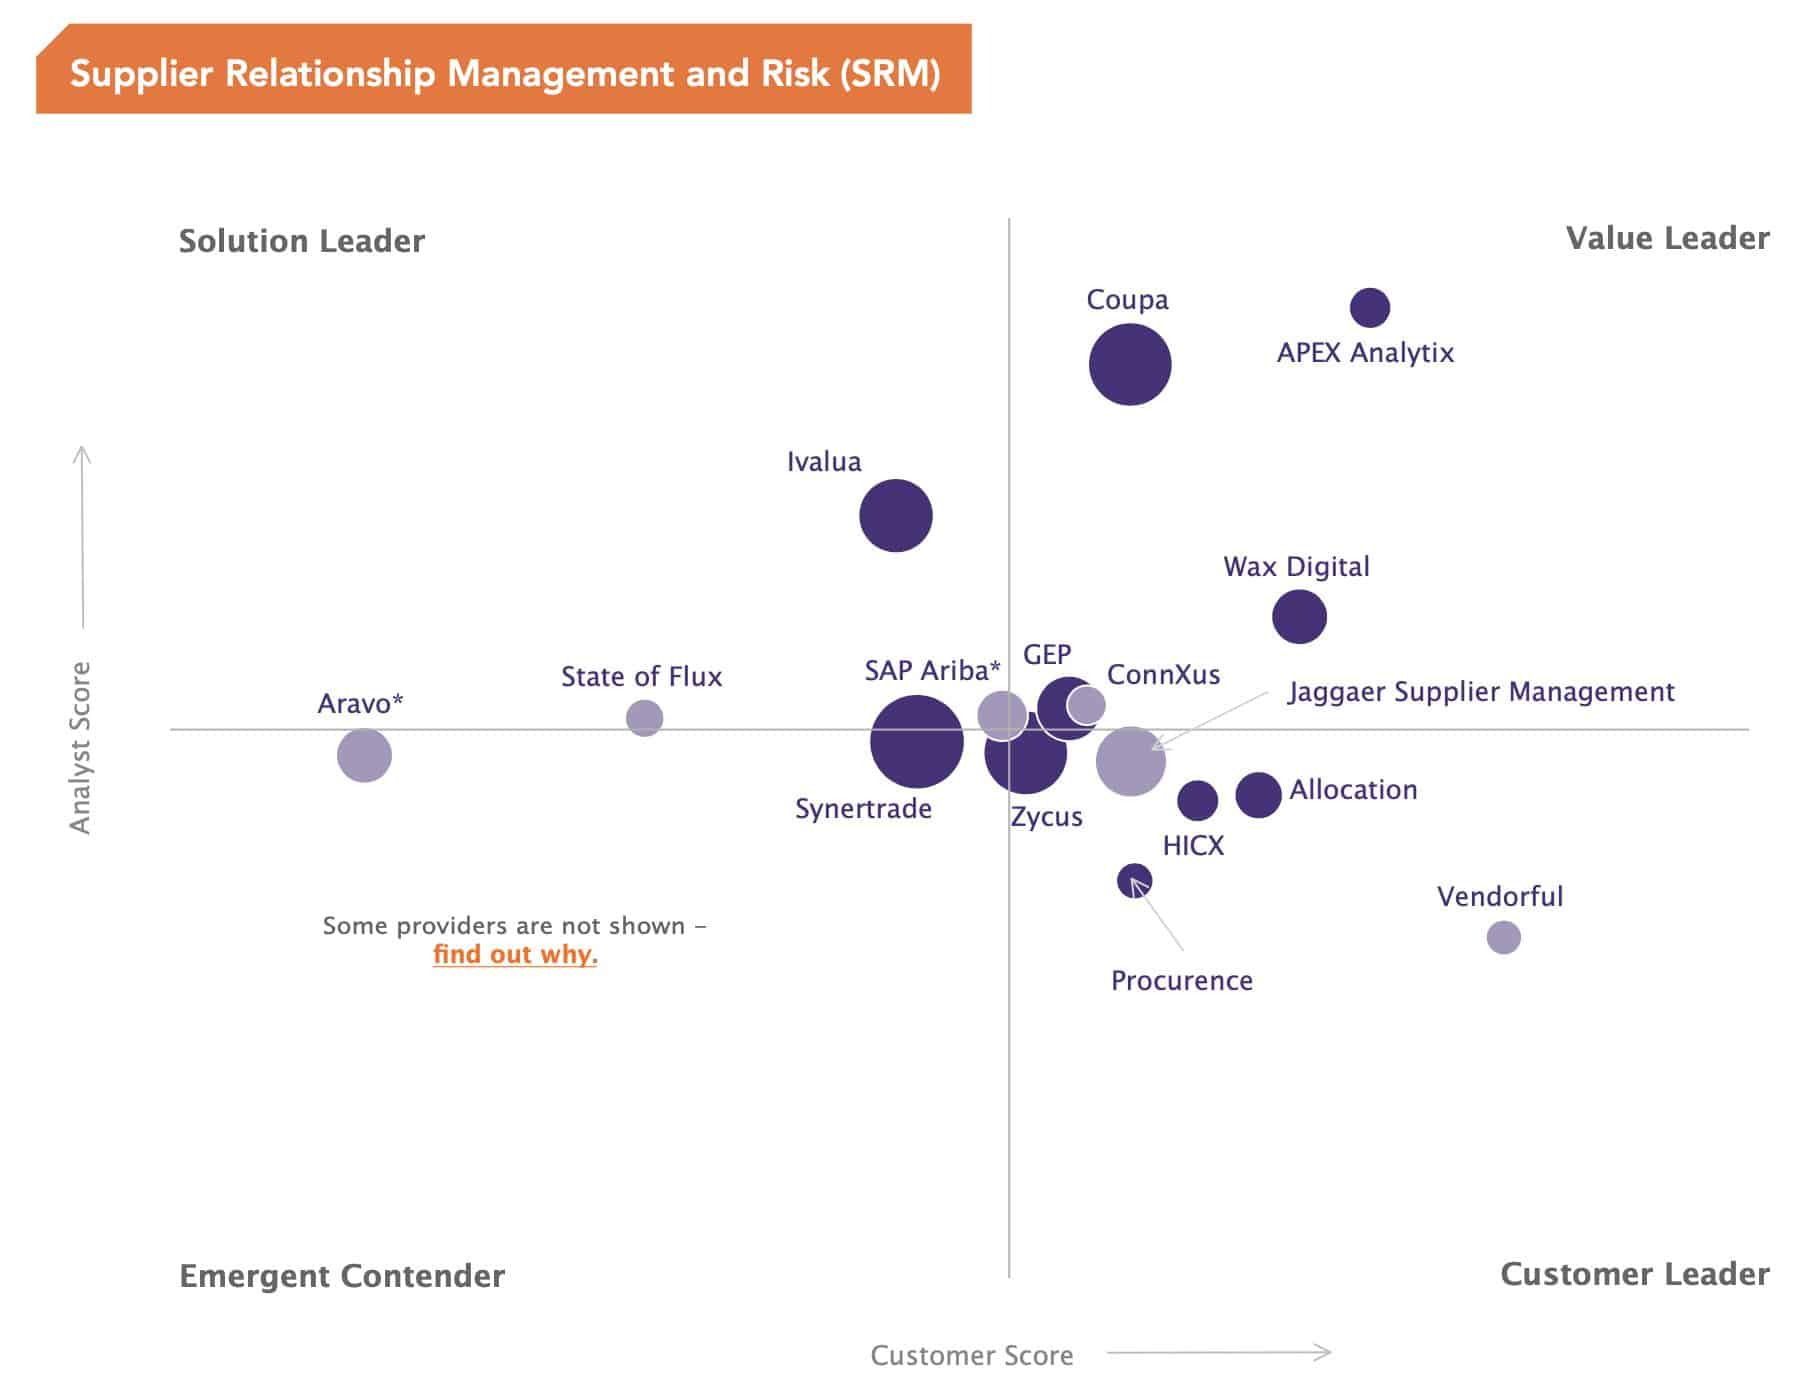 Spend Matters Solution Map - SRM and Supplier Risk- Nimble Persona